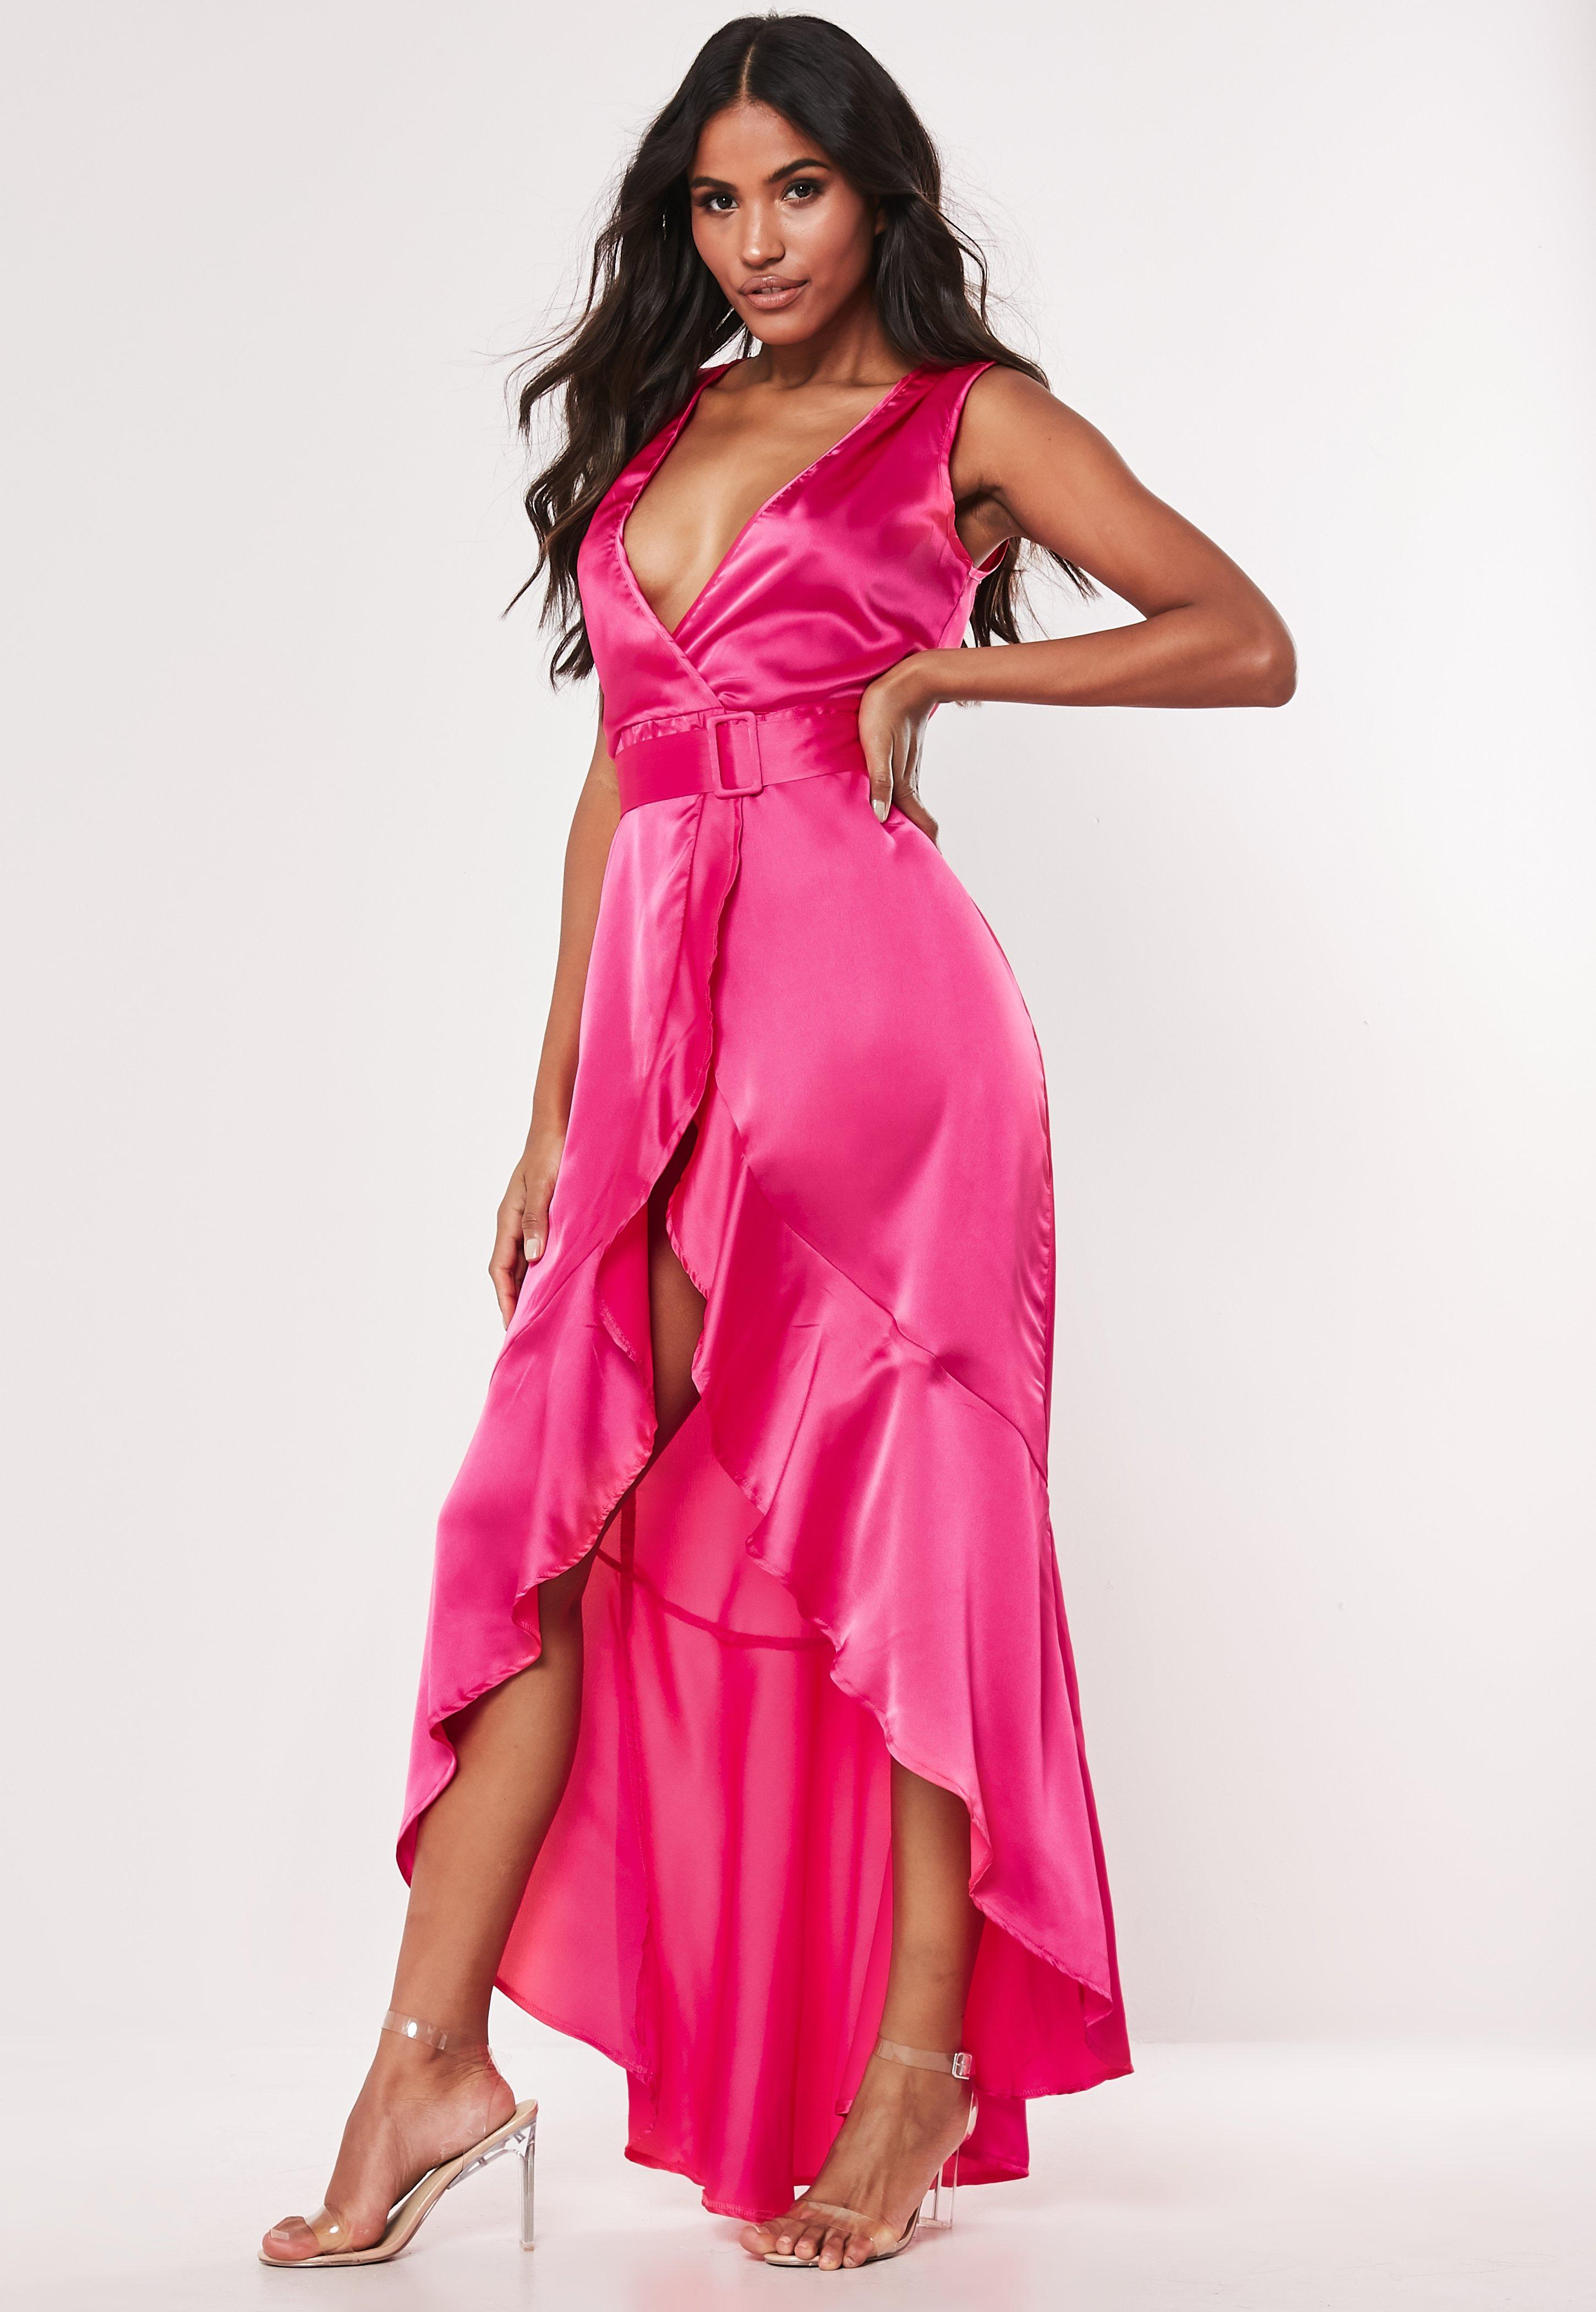 834557488a Deep V Neck Dress - Plunging Neckline Dresses